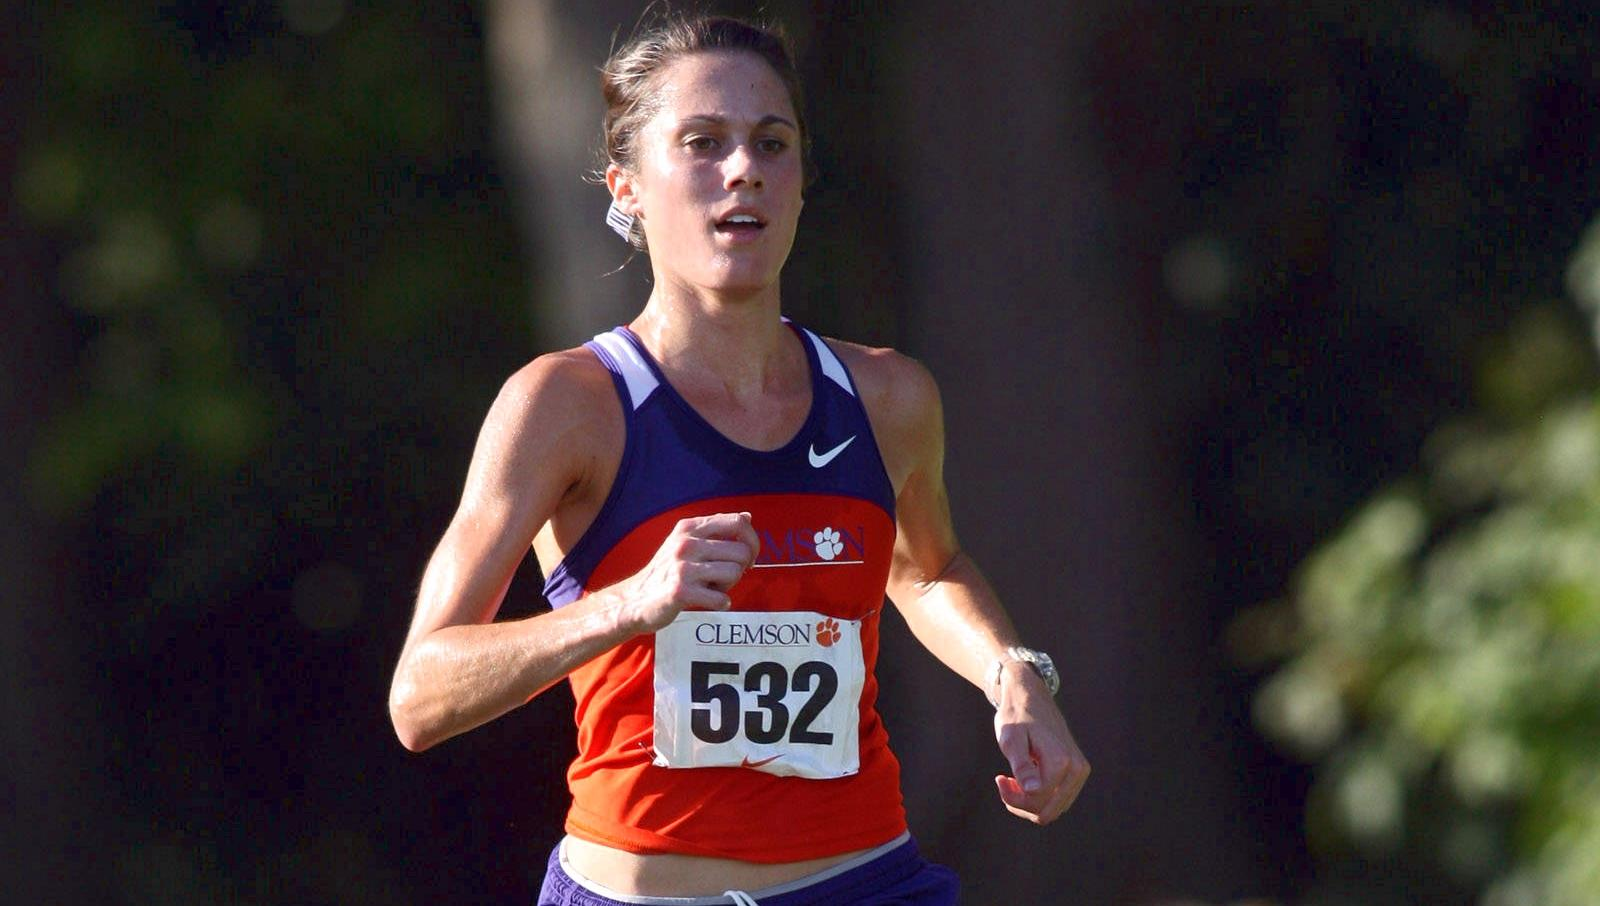 Clemson's Barker Earns All-Academic Recognition from USTFCCCA